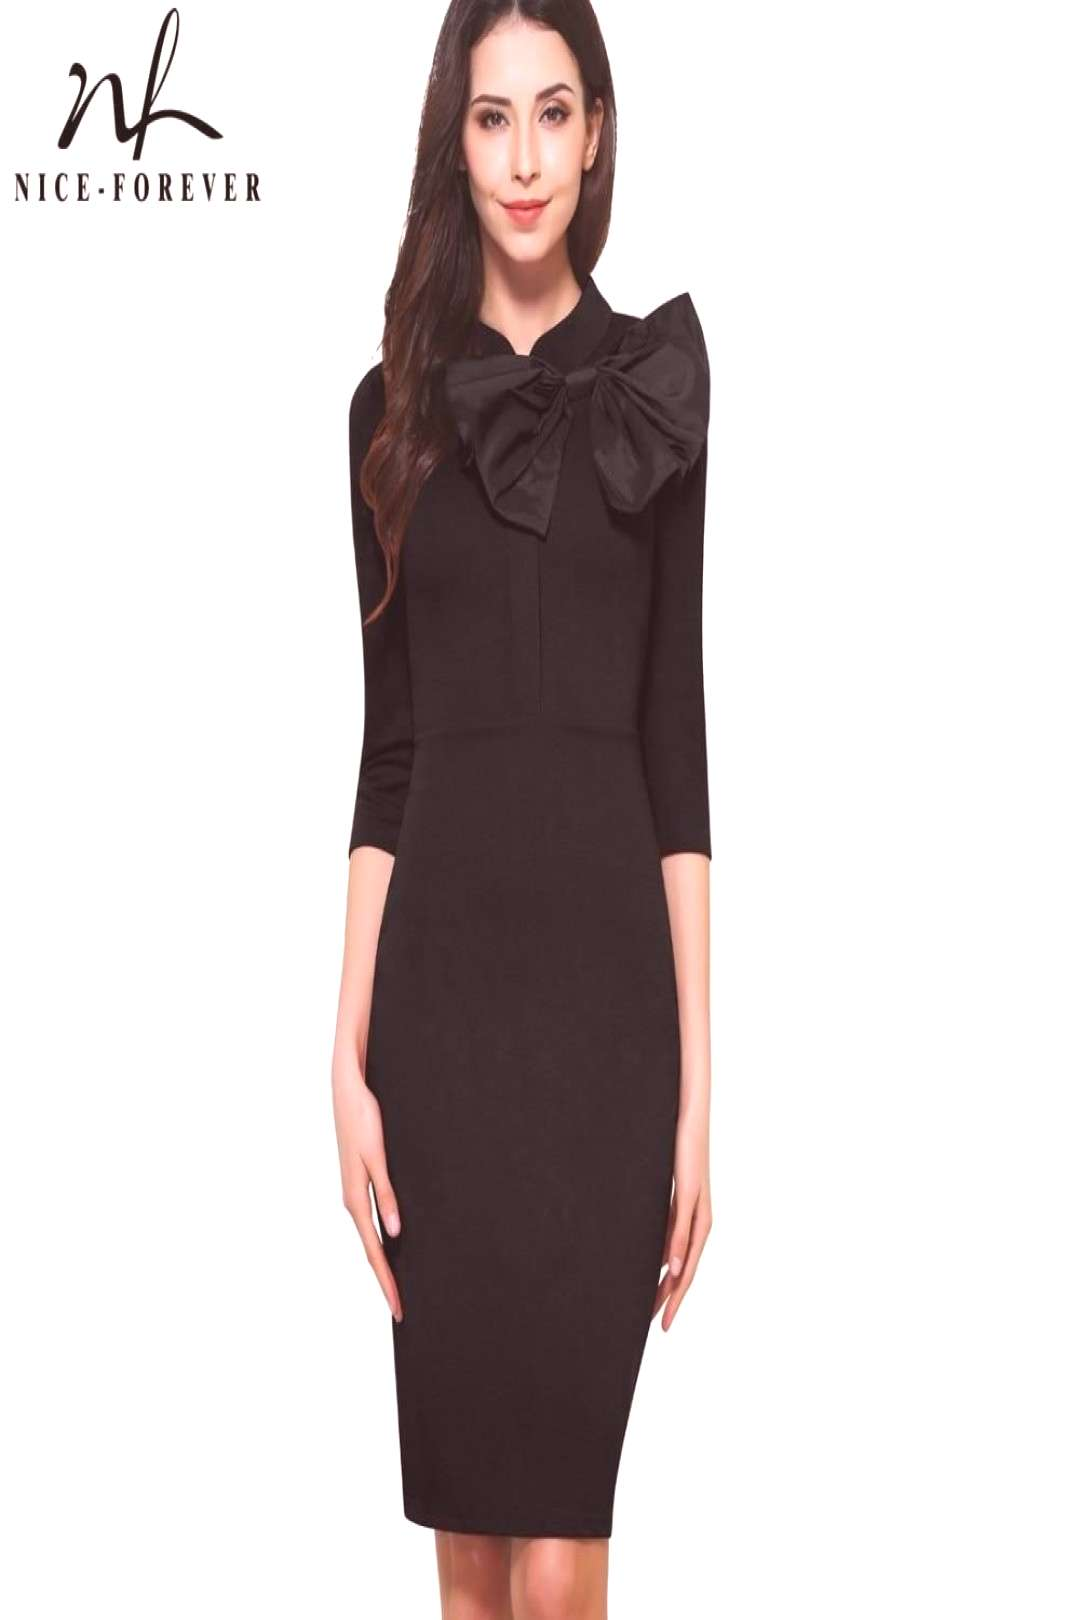 Nice-forever Vintage Bow Solid color Office Ladies dress Sheath Fitted Bodycon Elegant pencil Dress